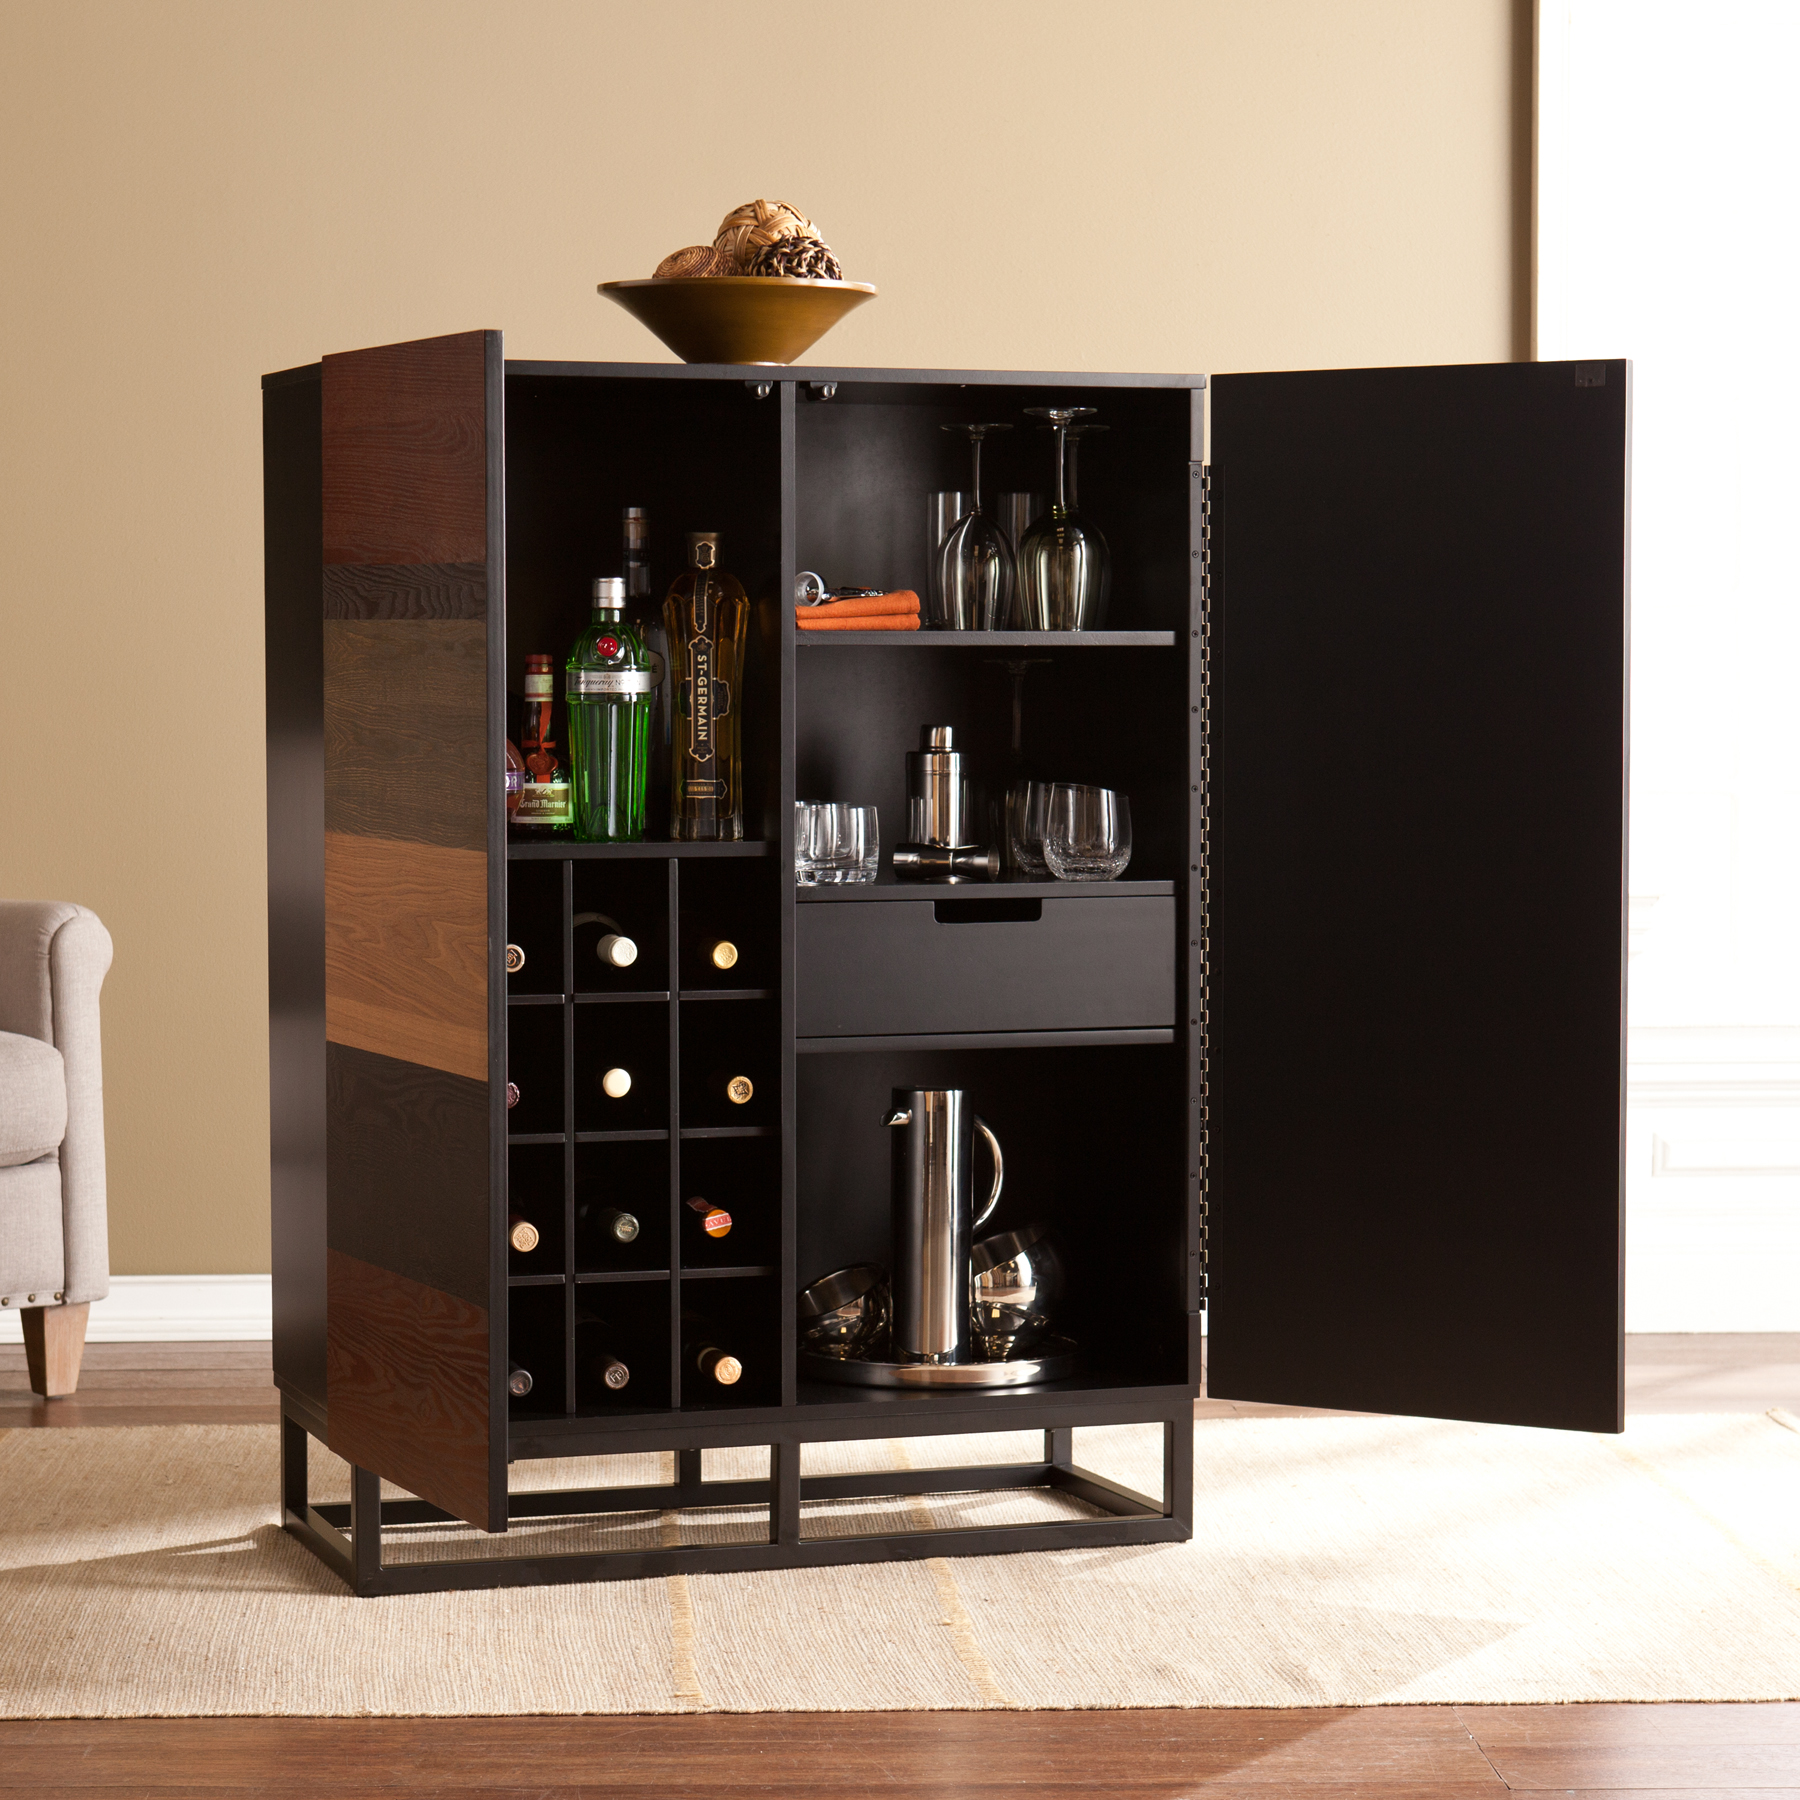 Southern Enterprises Kailey Bar Cabinet, Mid-Century, Multi-Tonal